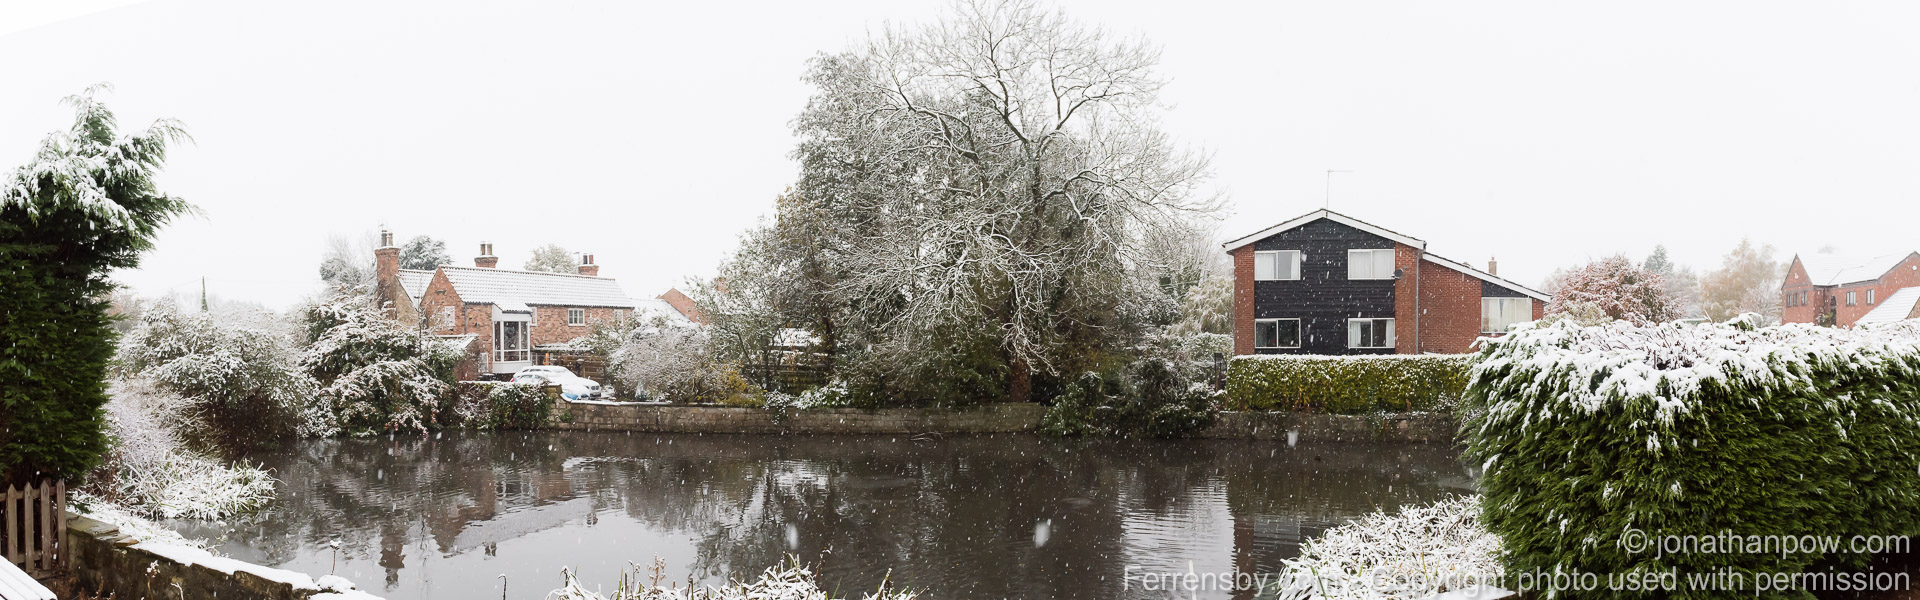 The village pond   Weather - Early November snow in the North Yorkshire village of Ferrensby, near Knaresborough - Picture date Wednesday 09 November, 2016 (Ferrensby, North Yorkshire)   Photo credit should read: Jonathan Pow/jp@jonathanpow.com   REF : POW_161109_3832-Pano